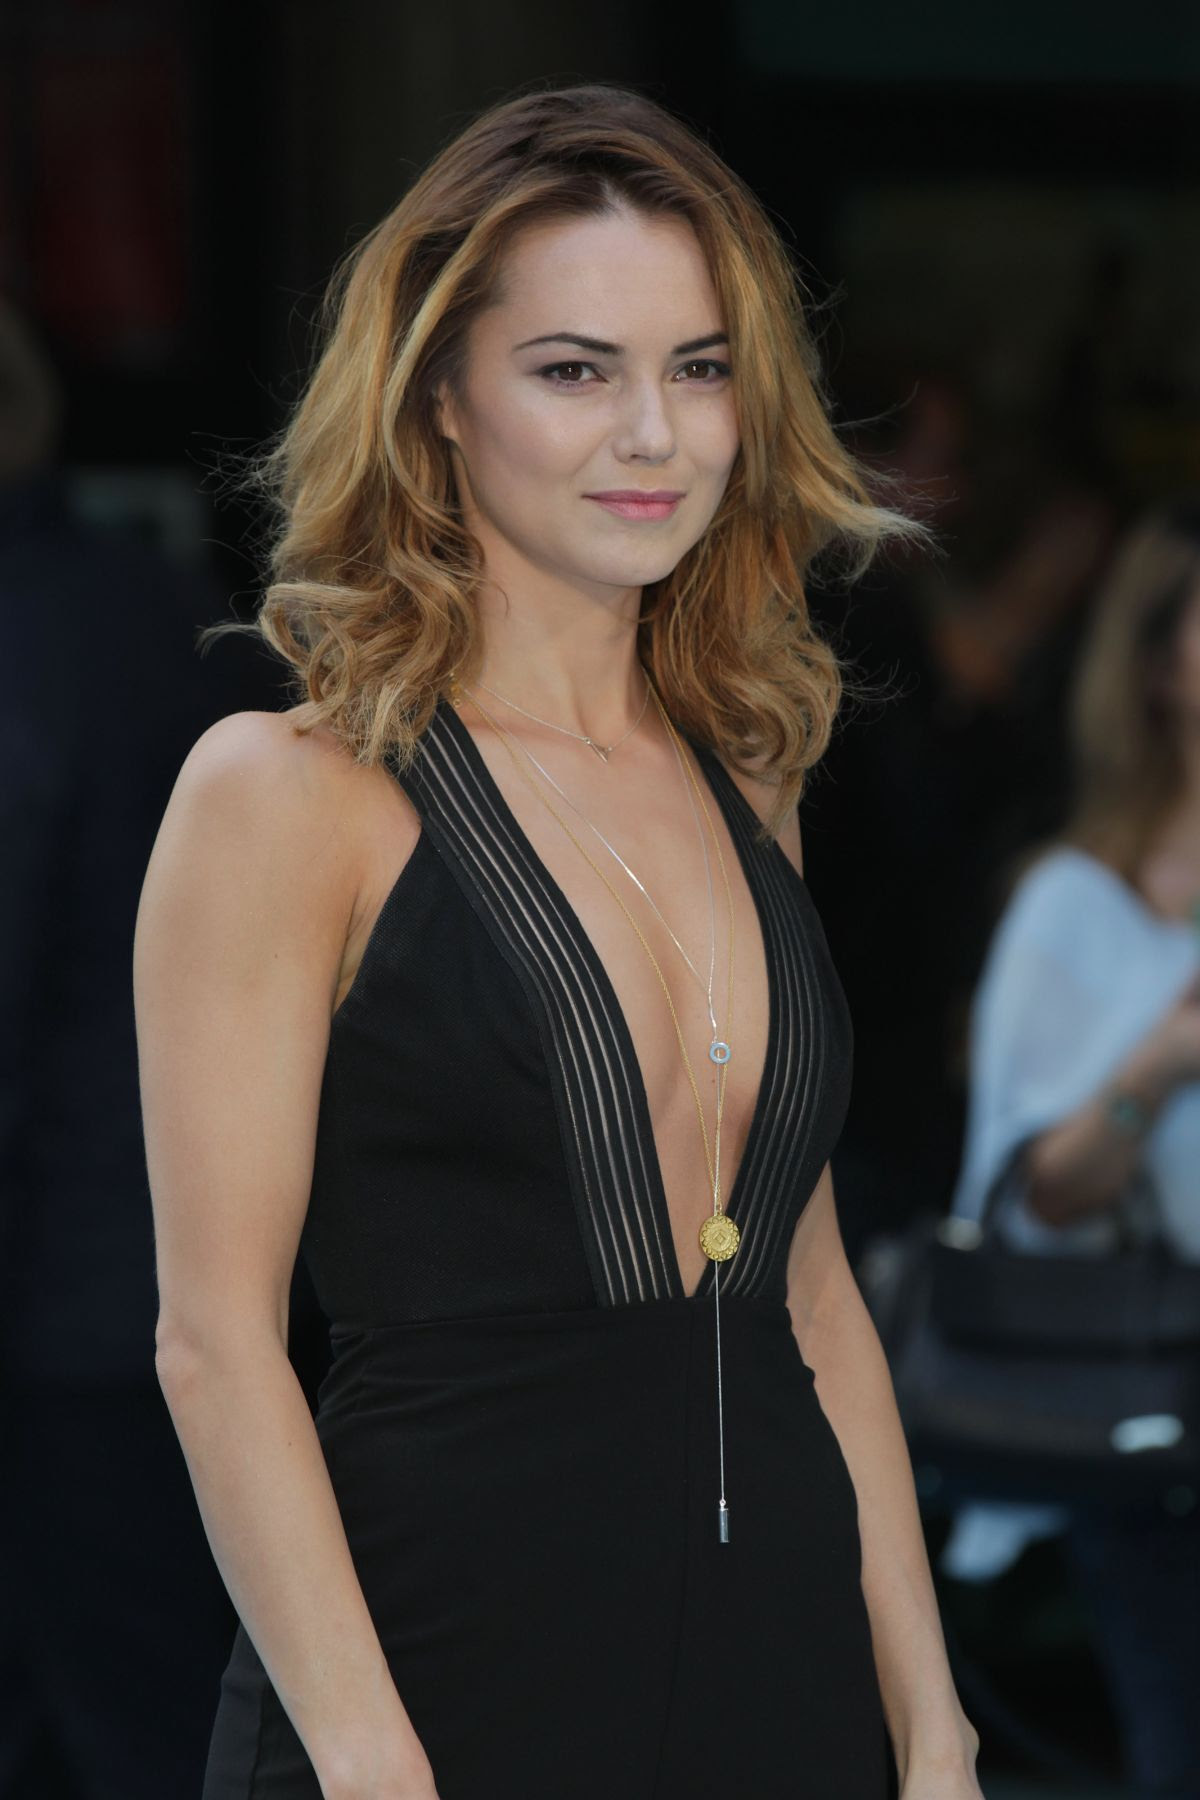 KARA TOINTON at Entourage Premiere in London